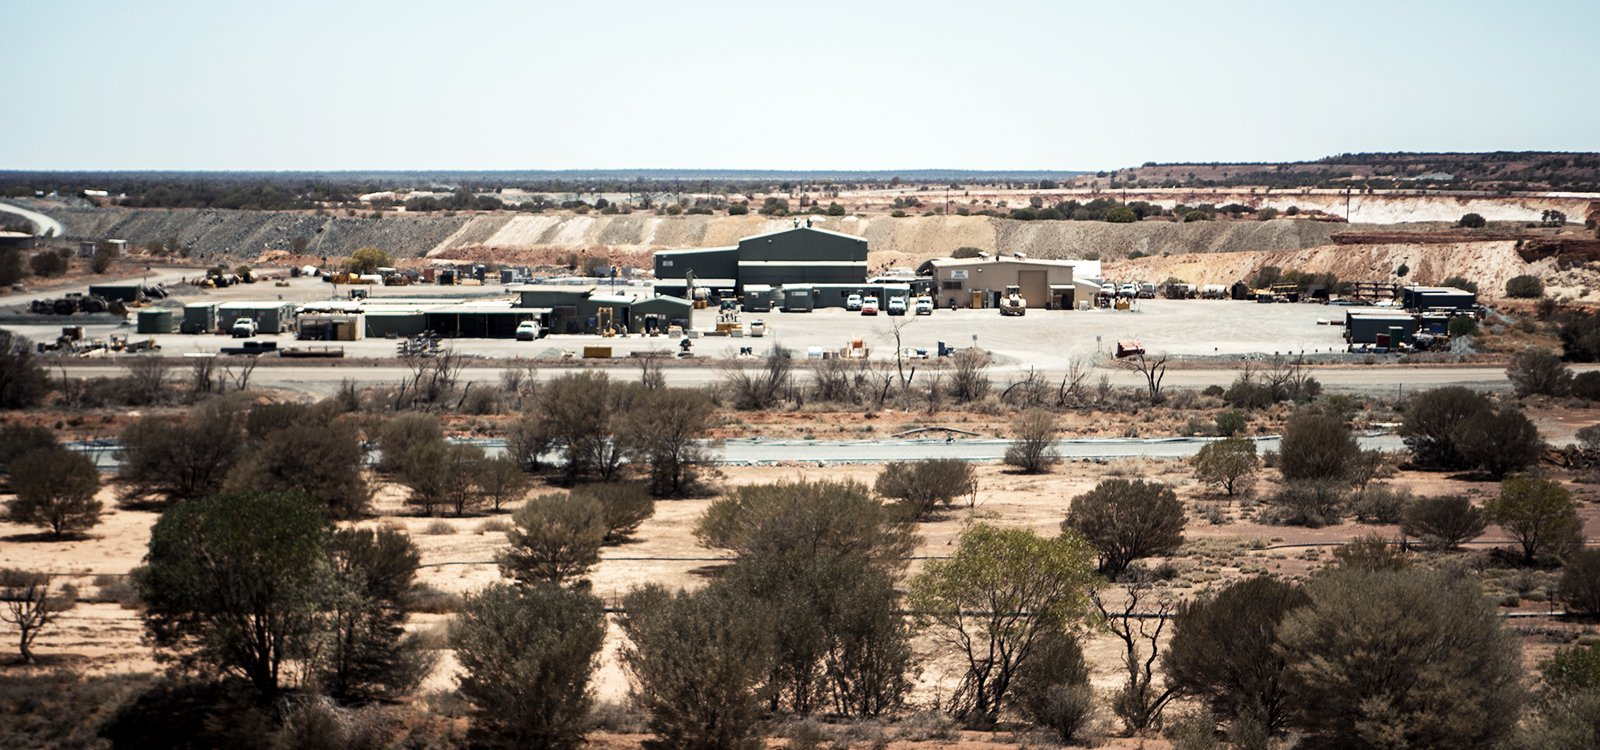 <p>Since production started at the Jundee gold mine in 1995, the remote Western Australia operation has produced more than 7 million ounces of gold.</p>